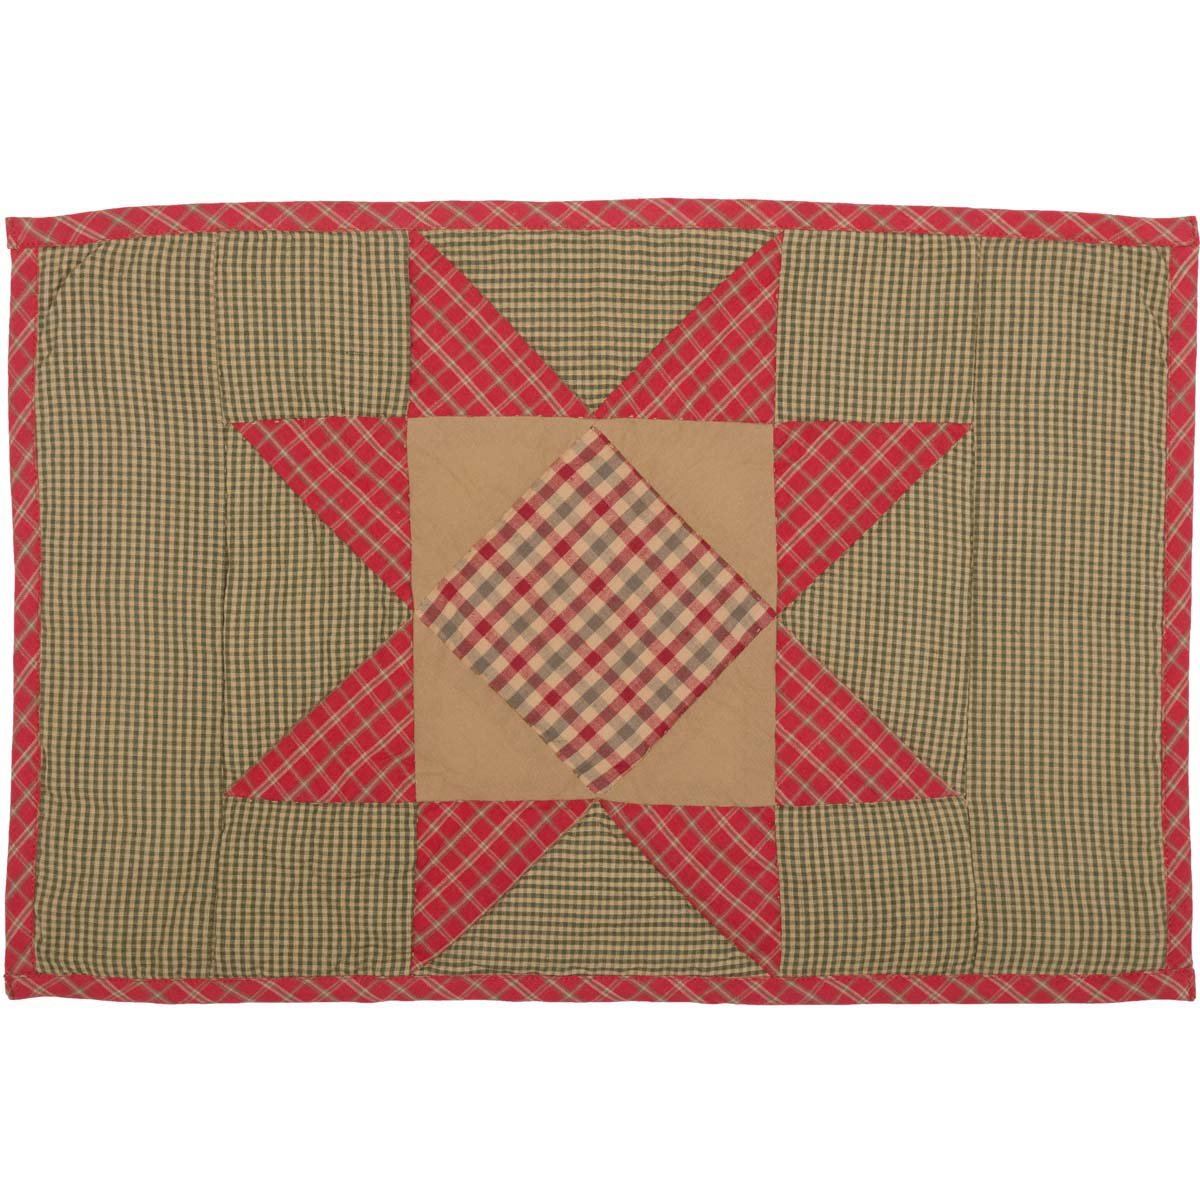 Dolly Star Quilted Placemat Set of 6.